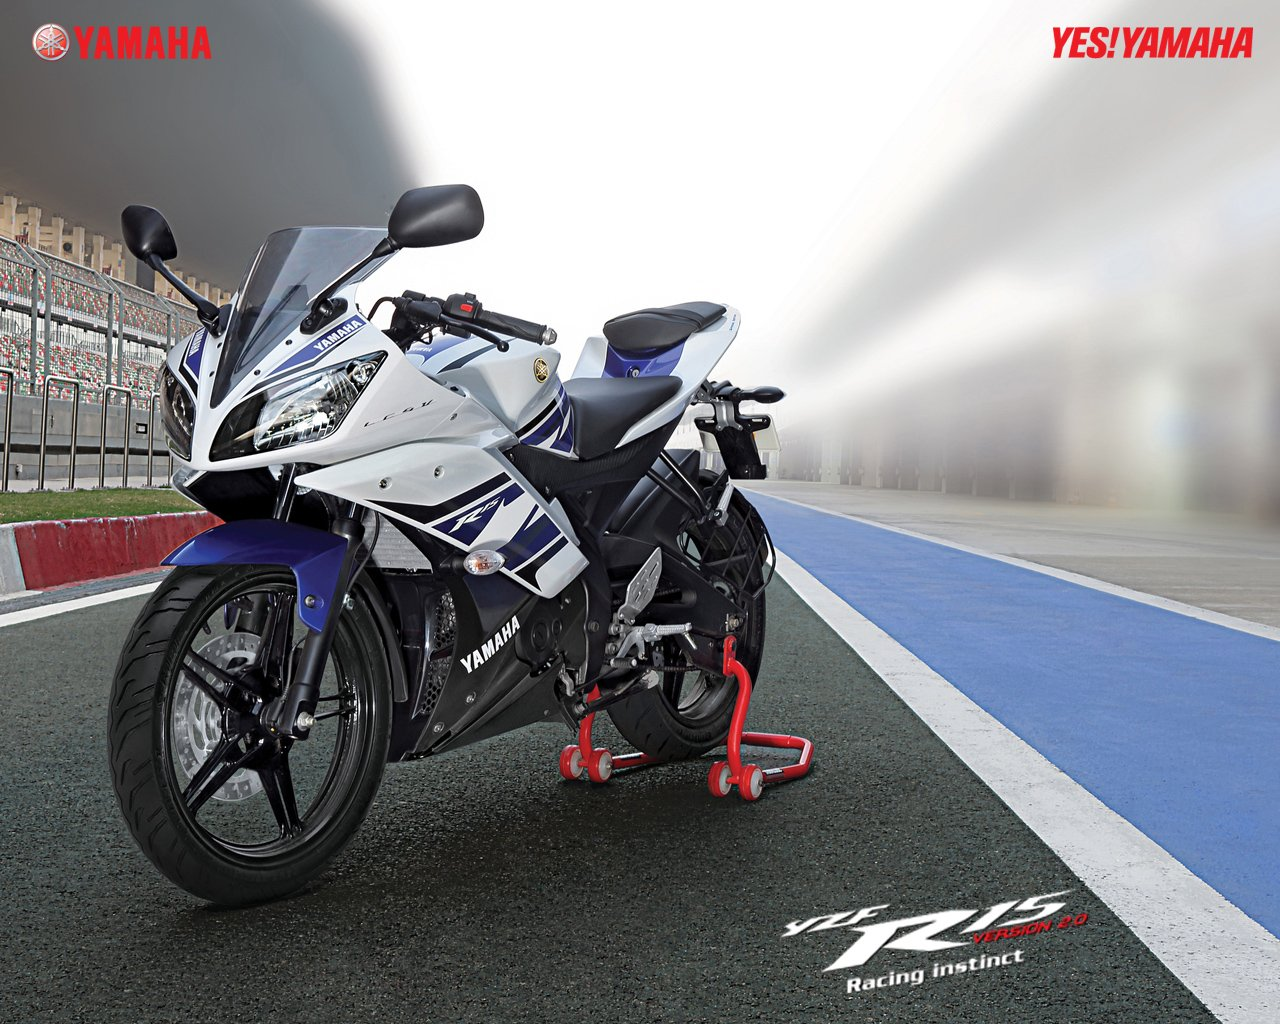 Yamaha YZF-R15 Wallpapers, Vehicles, HQ Yamaha YZF-R15